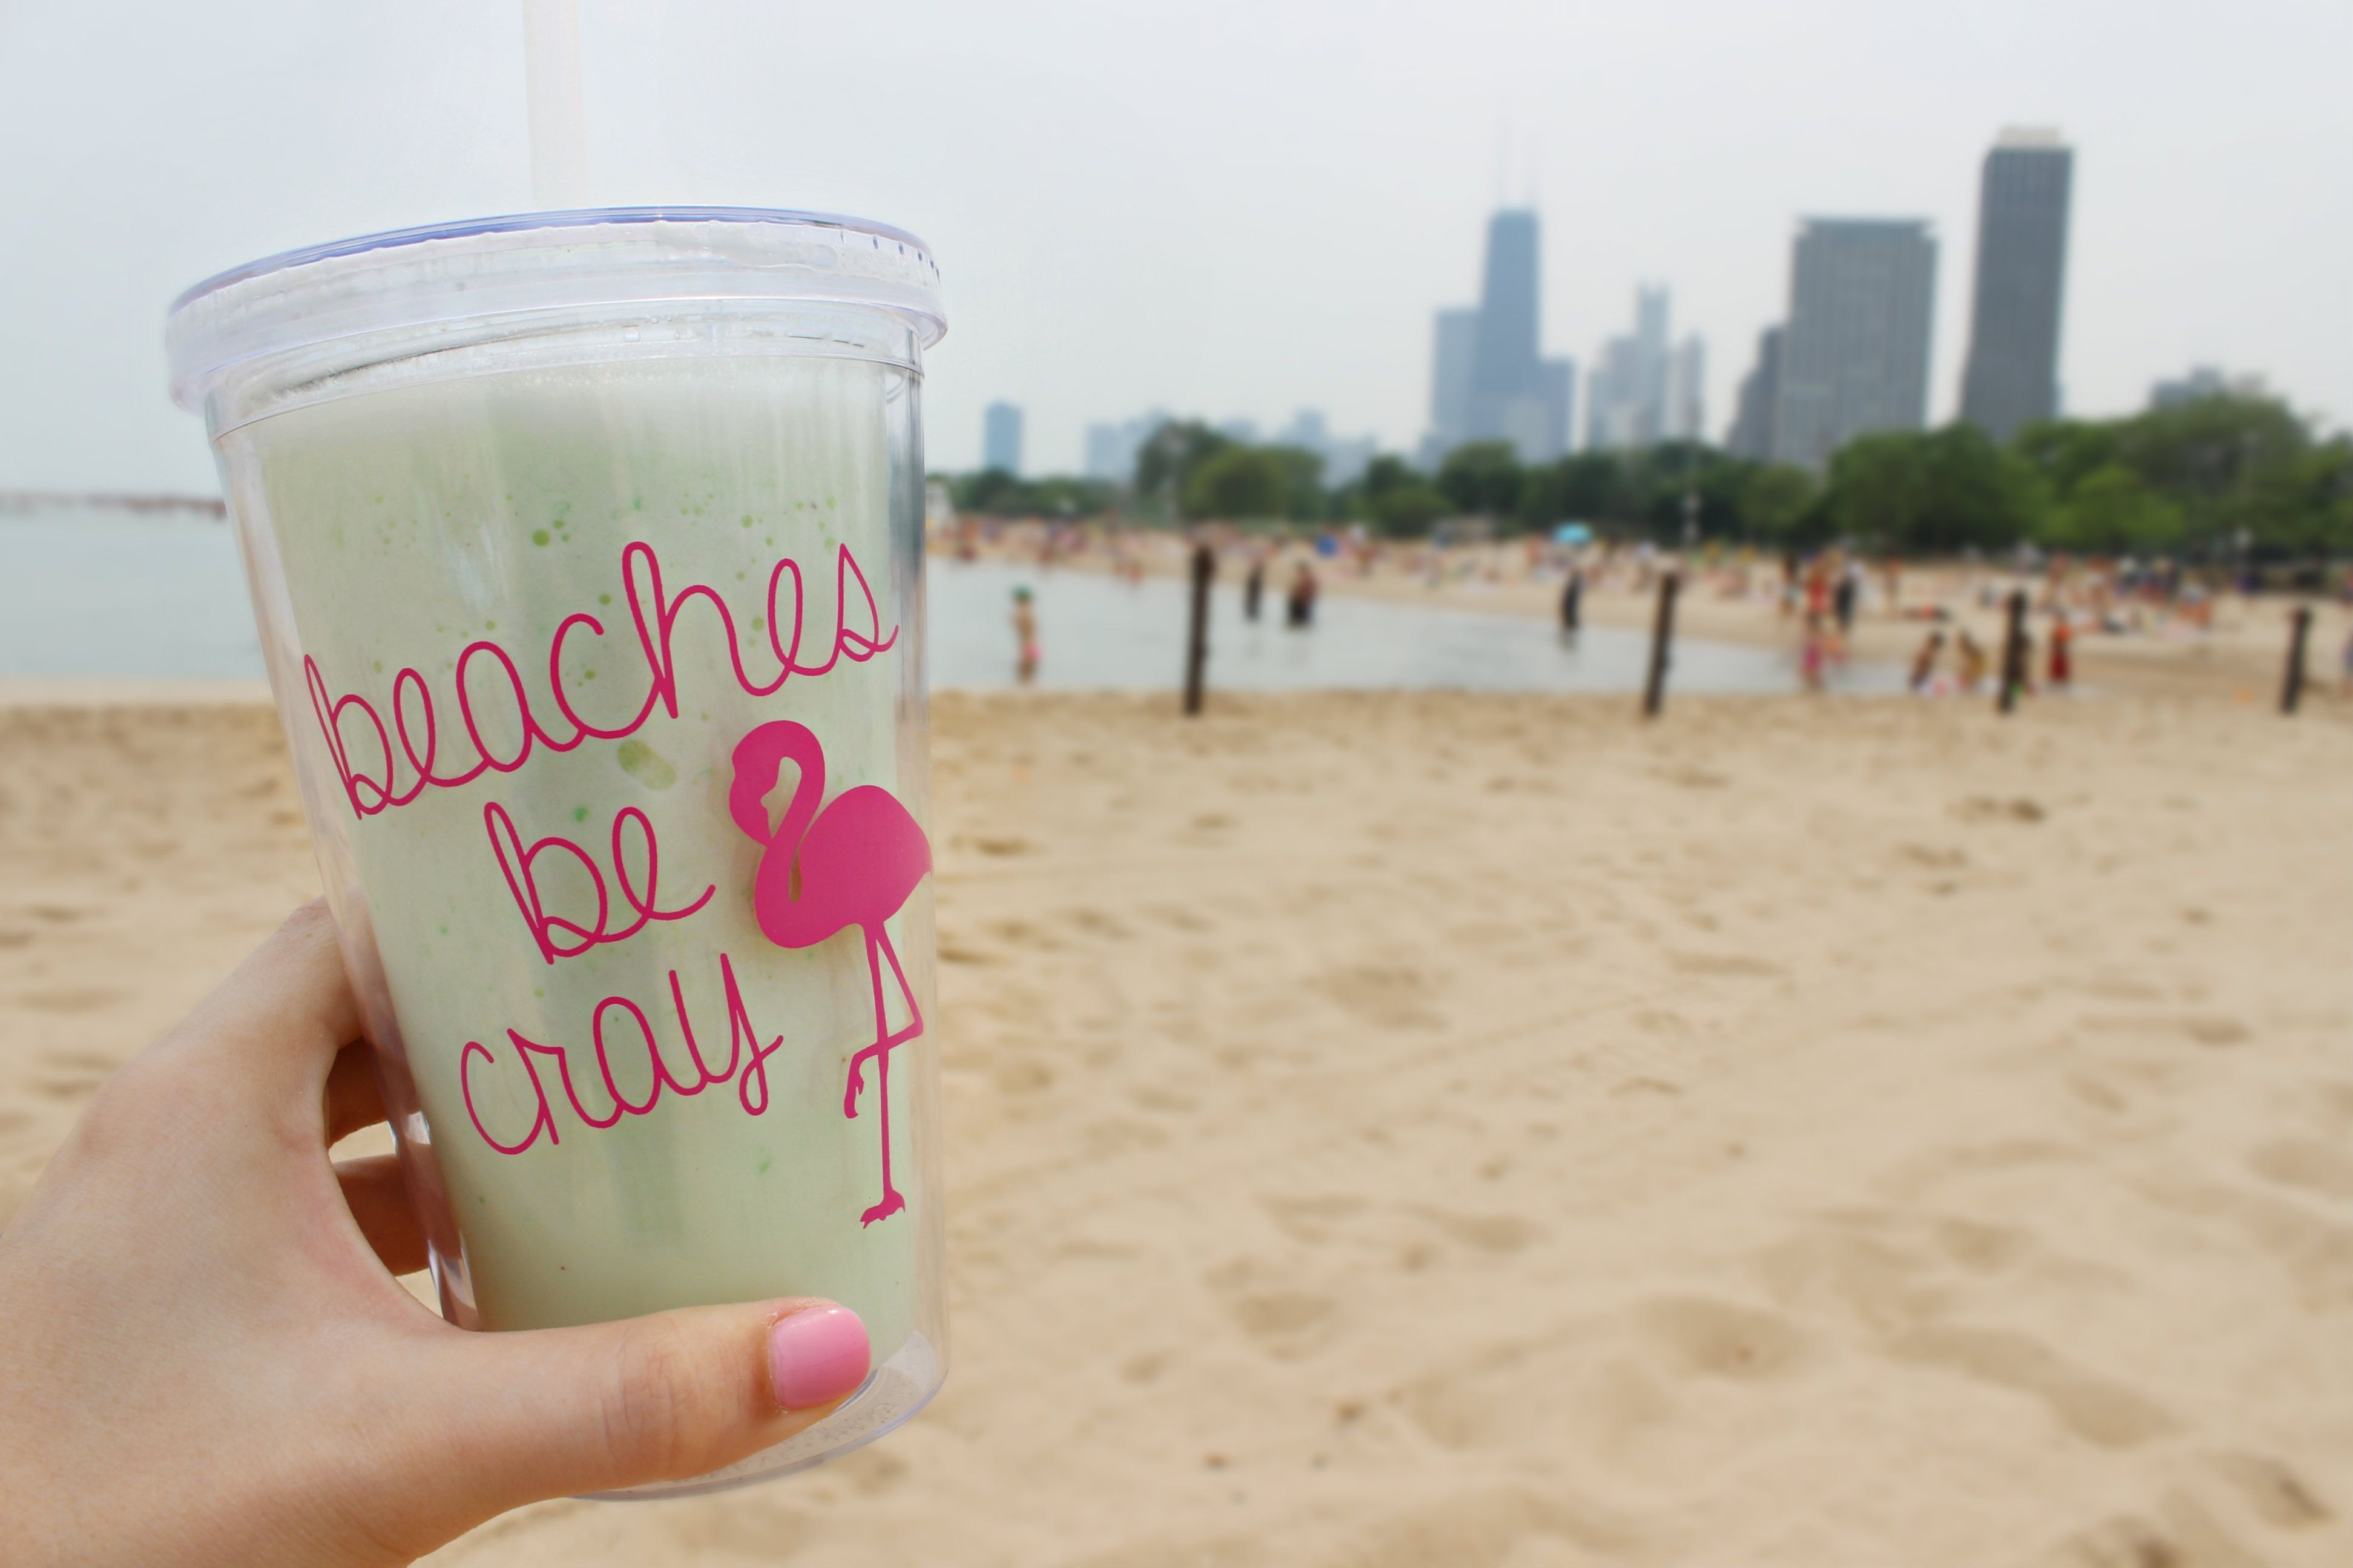 Everybody knows...beaches be cray! This witty (and punny) cold beverage tumbler is the perfection addition to your beach essentials. Fill it with your drink of choice (pictured is a kiwi honeydew smoothie) and head on over to your nearest beach for some fun in the sun! (Click here to purchase your own tumbler from The Trendy Sparrow - $20) #honeydewsmoothie Everybody knows...beaches be cray! This witty (and punny) cold beverage tumbler is the perfection addition to your beach essentials. Fill #honeydewsmoothie